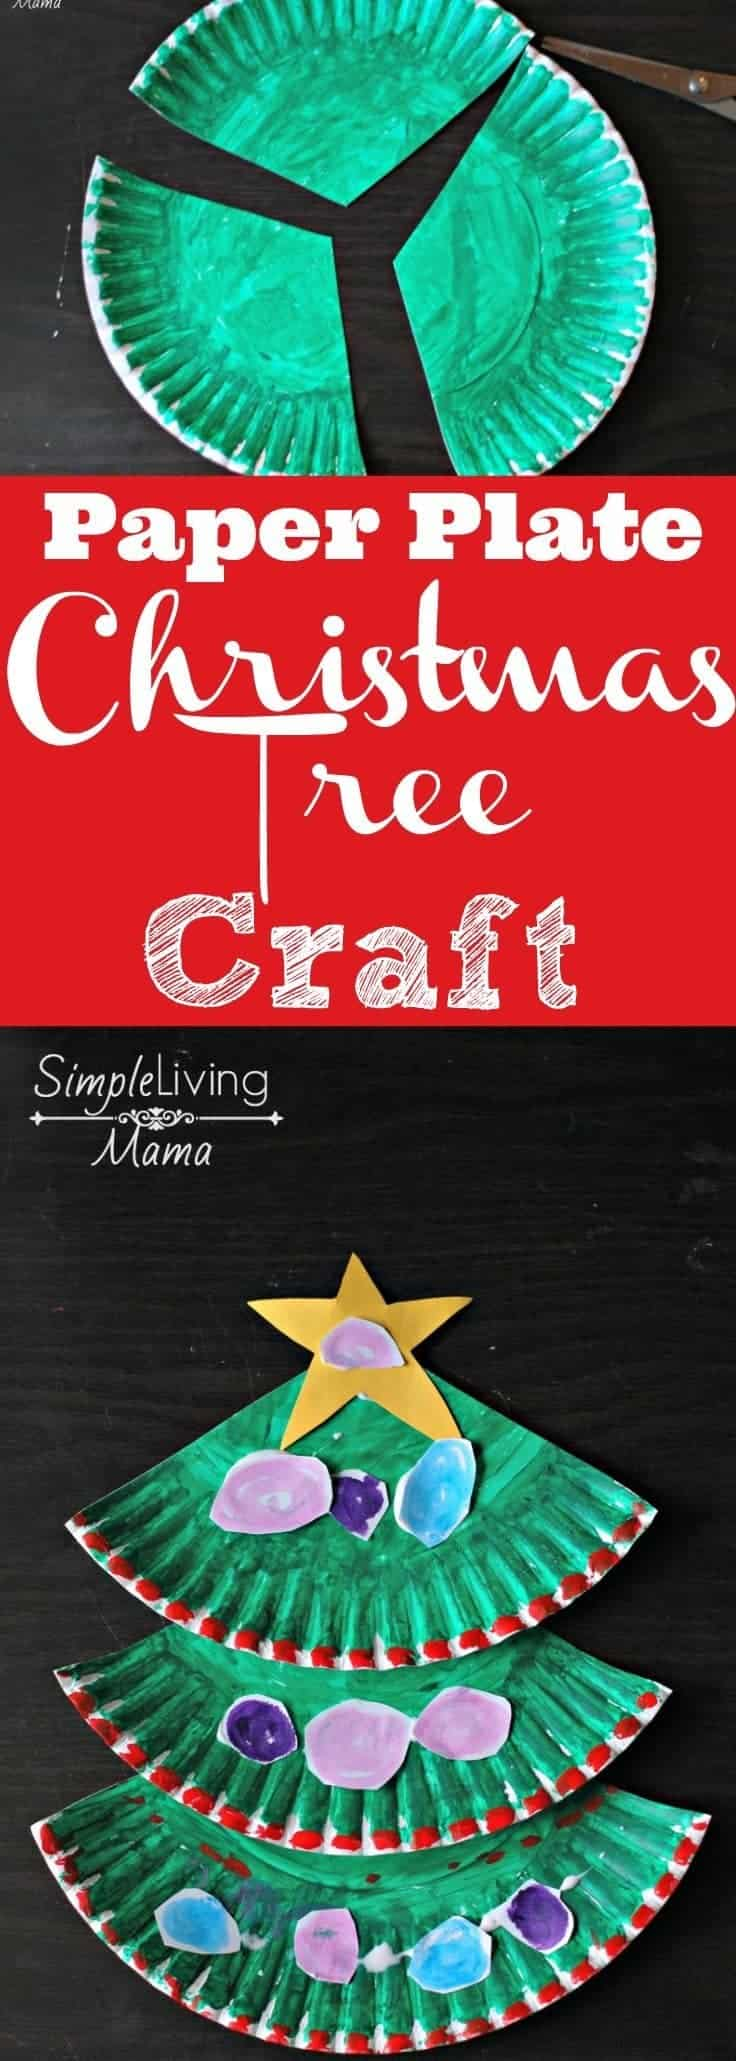 Paper plate christmas tree craft simple living mama for Christmas crafts for pre schoolers